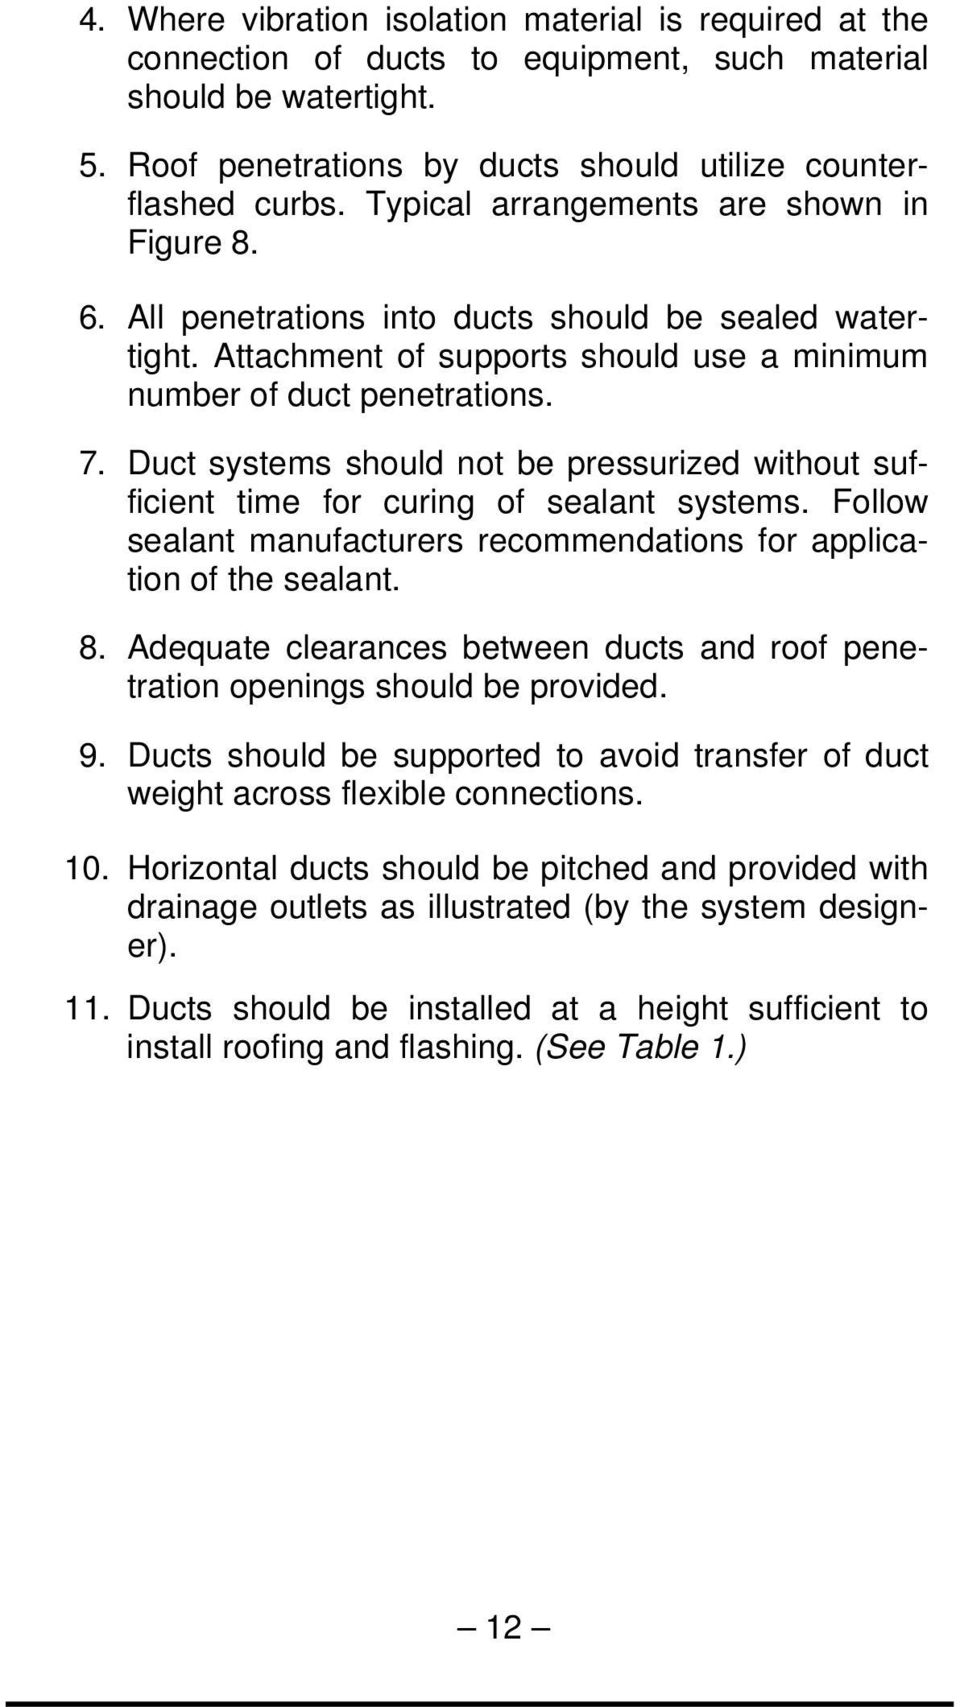 Duct systems should not be pressurized without sufficient time for curing of sealant systems. Follow sealant manufacturers recommendations for application of the sealant. 8.